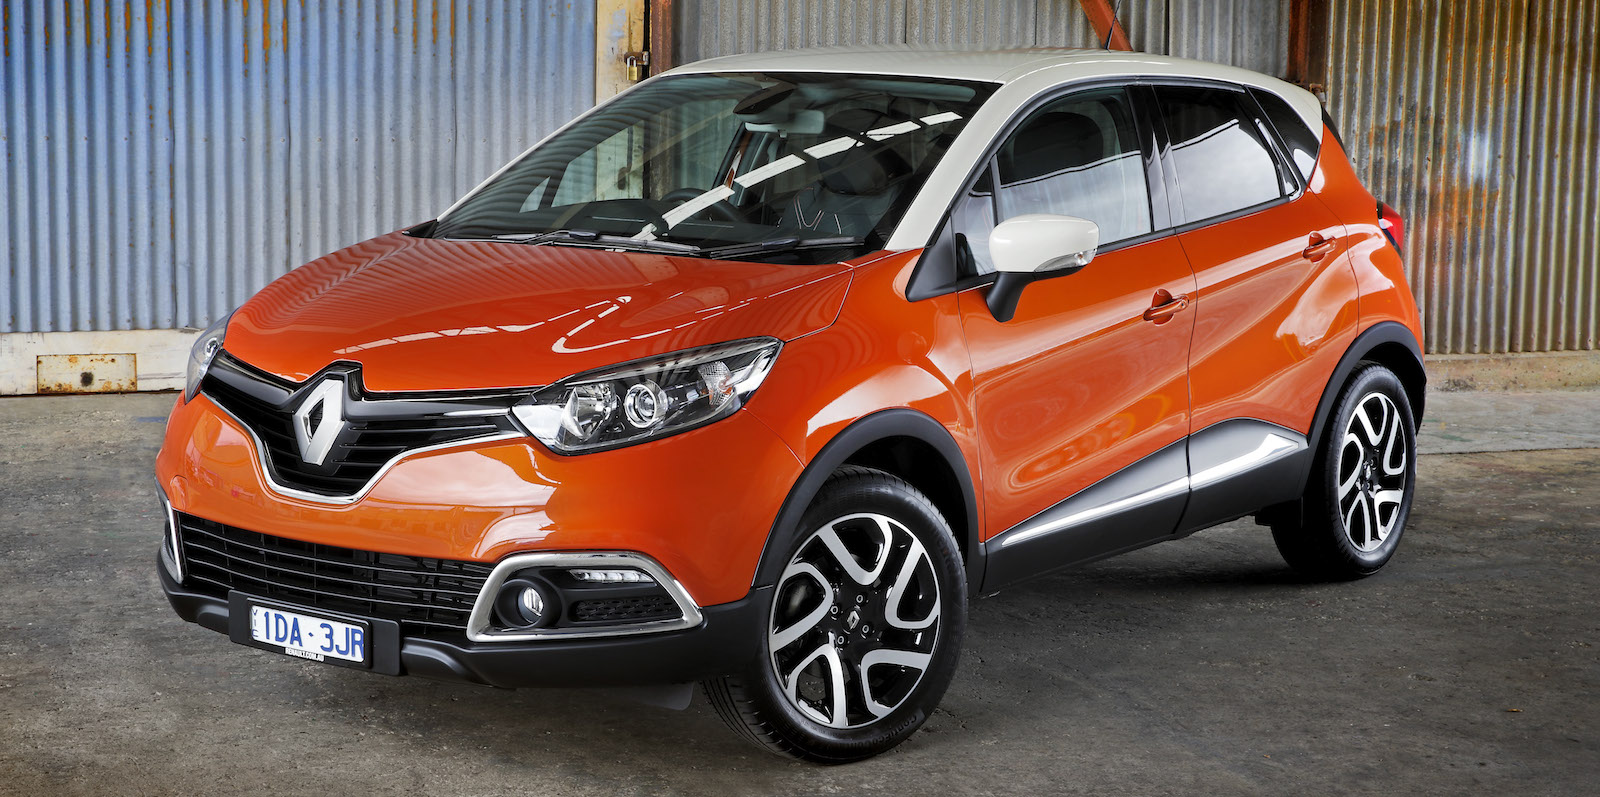 2015 renault captur pricing and specifications photos 1 of 7. Black Bedroom Furniture Sets. Home Design Ideas